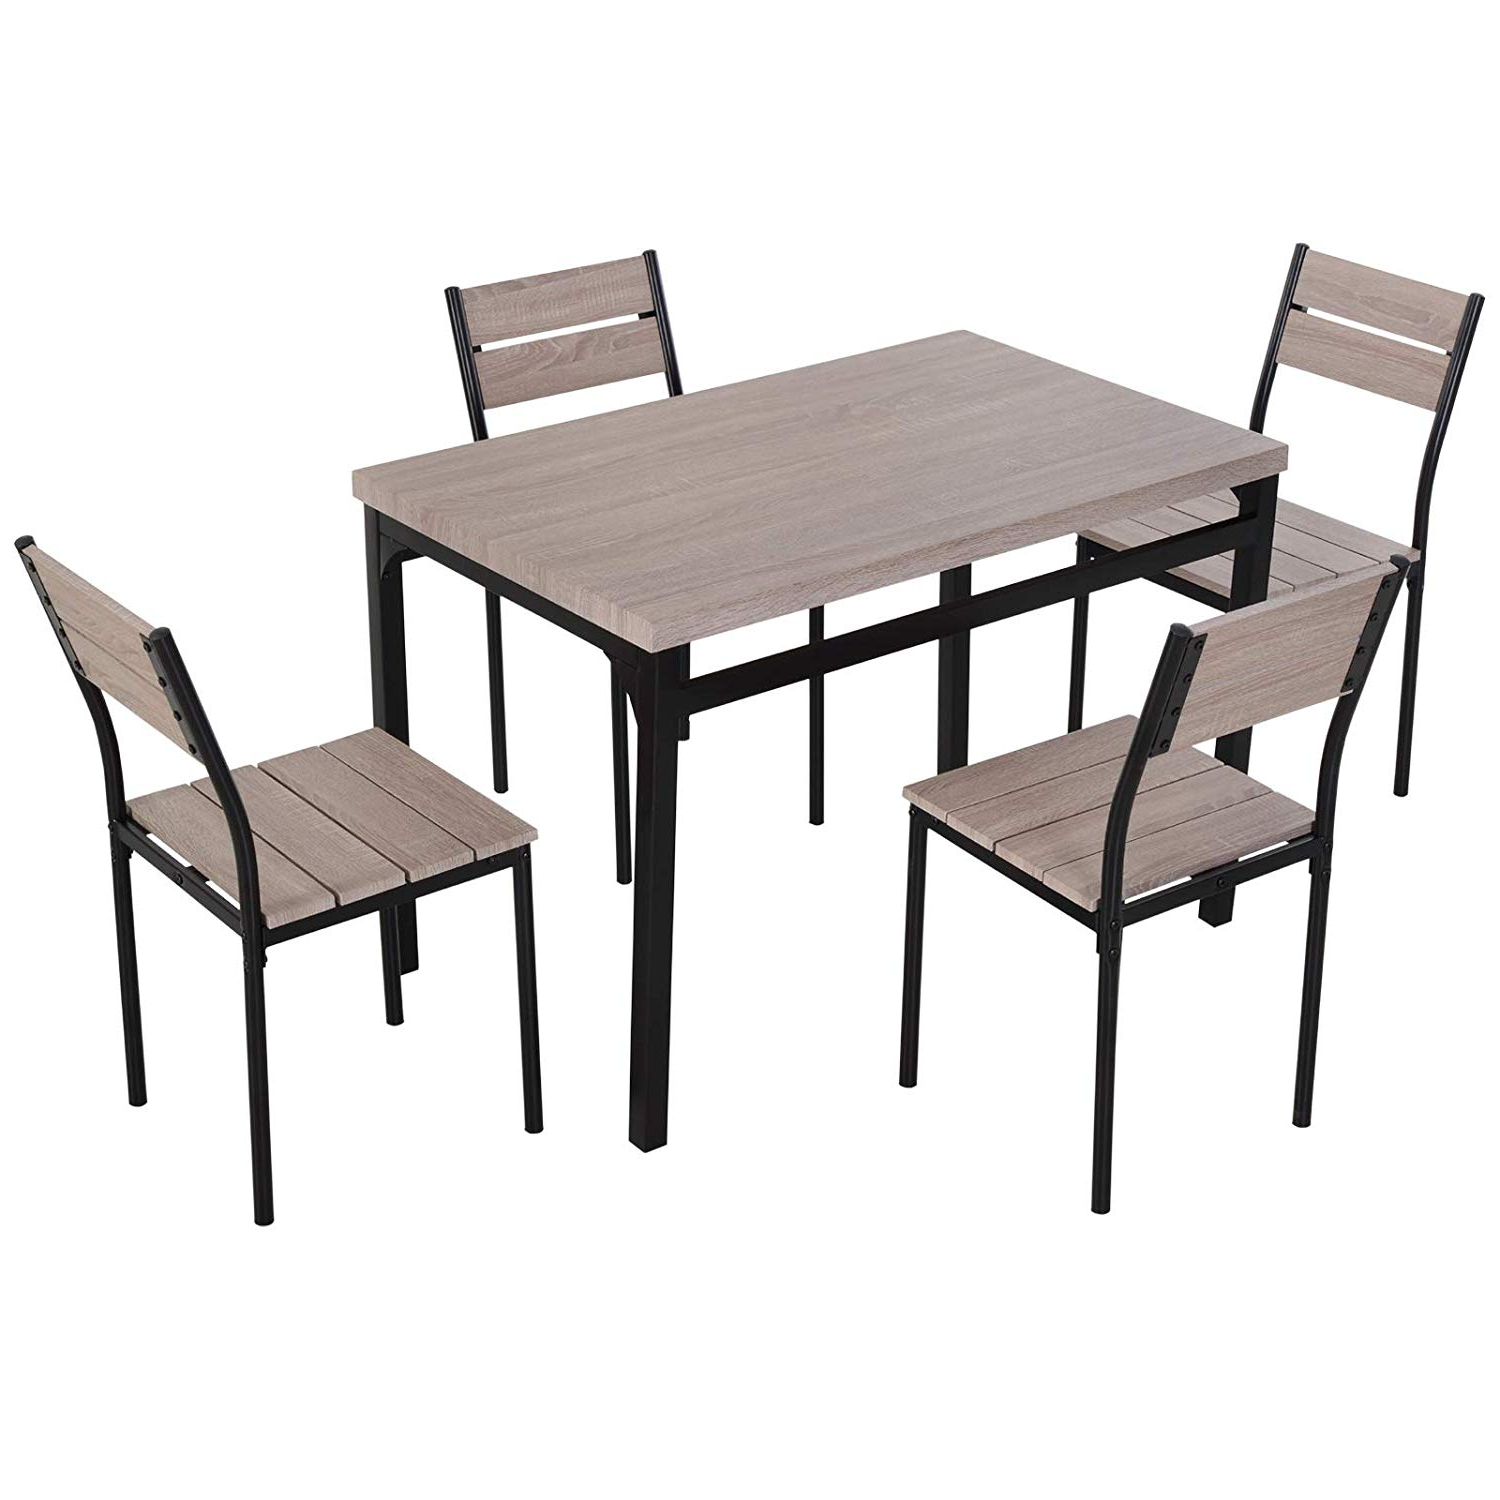 Preferred Homcom 5 Piece Transitional Style Dining Room Table Set With Chairs Within Transitional 3 Piece Drop Leaf Casual Dining Tables Set (View 16 of 30)